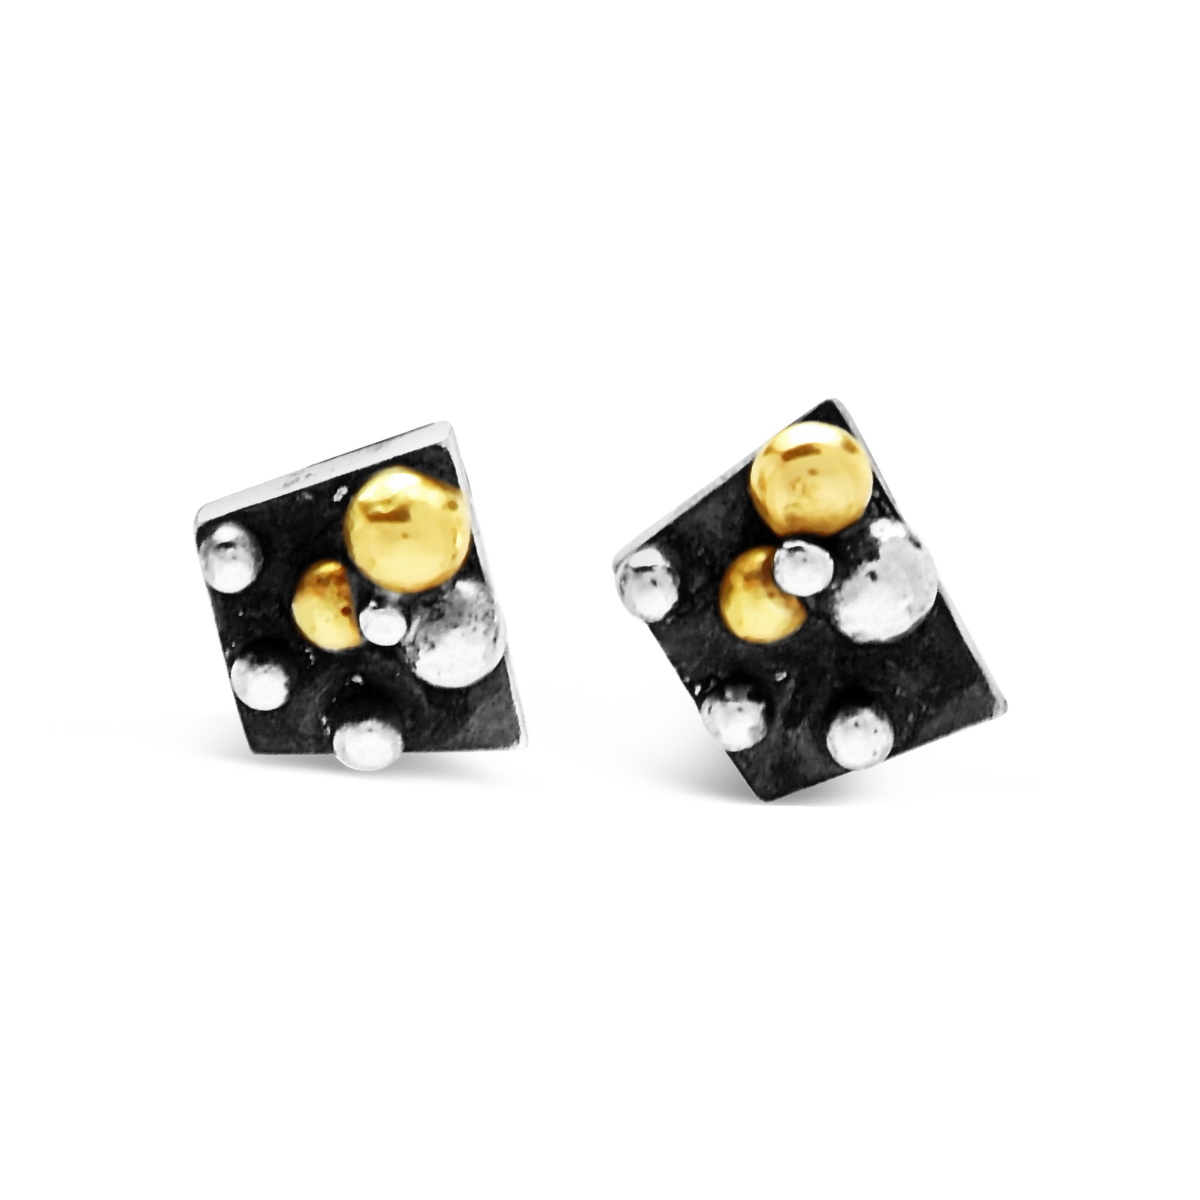 Molecule silver and gold angled earrings